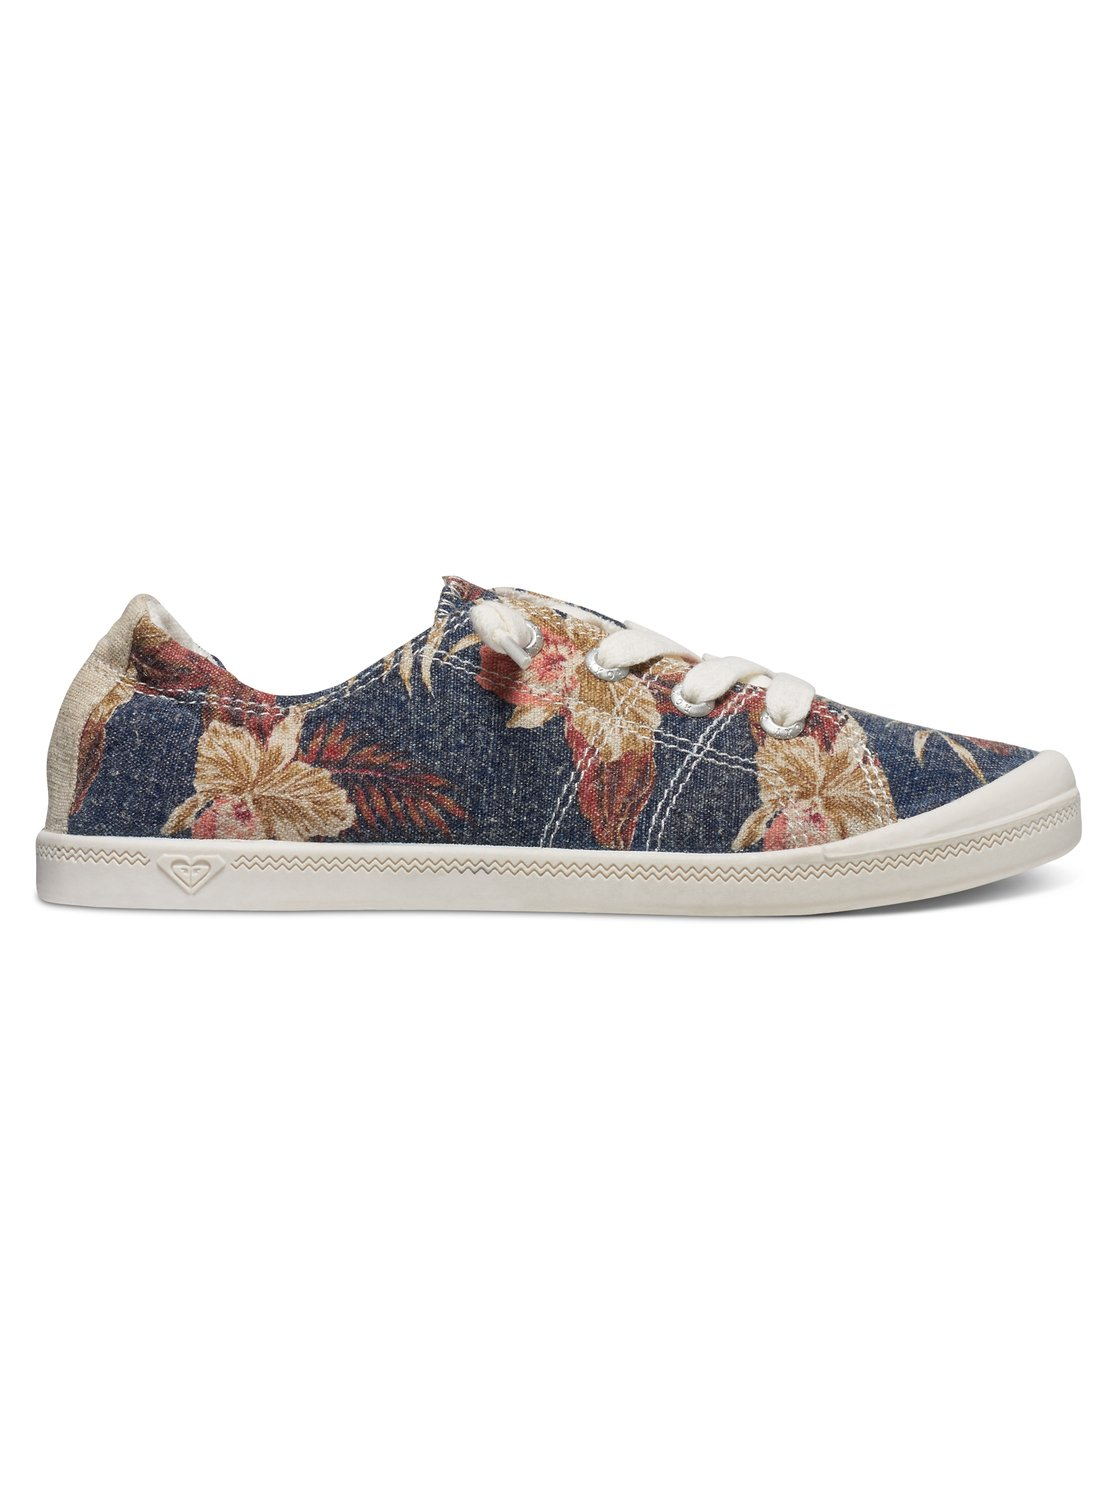 50826d10 1 Rory Shoes ARJS300223 Roxy